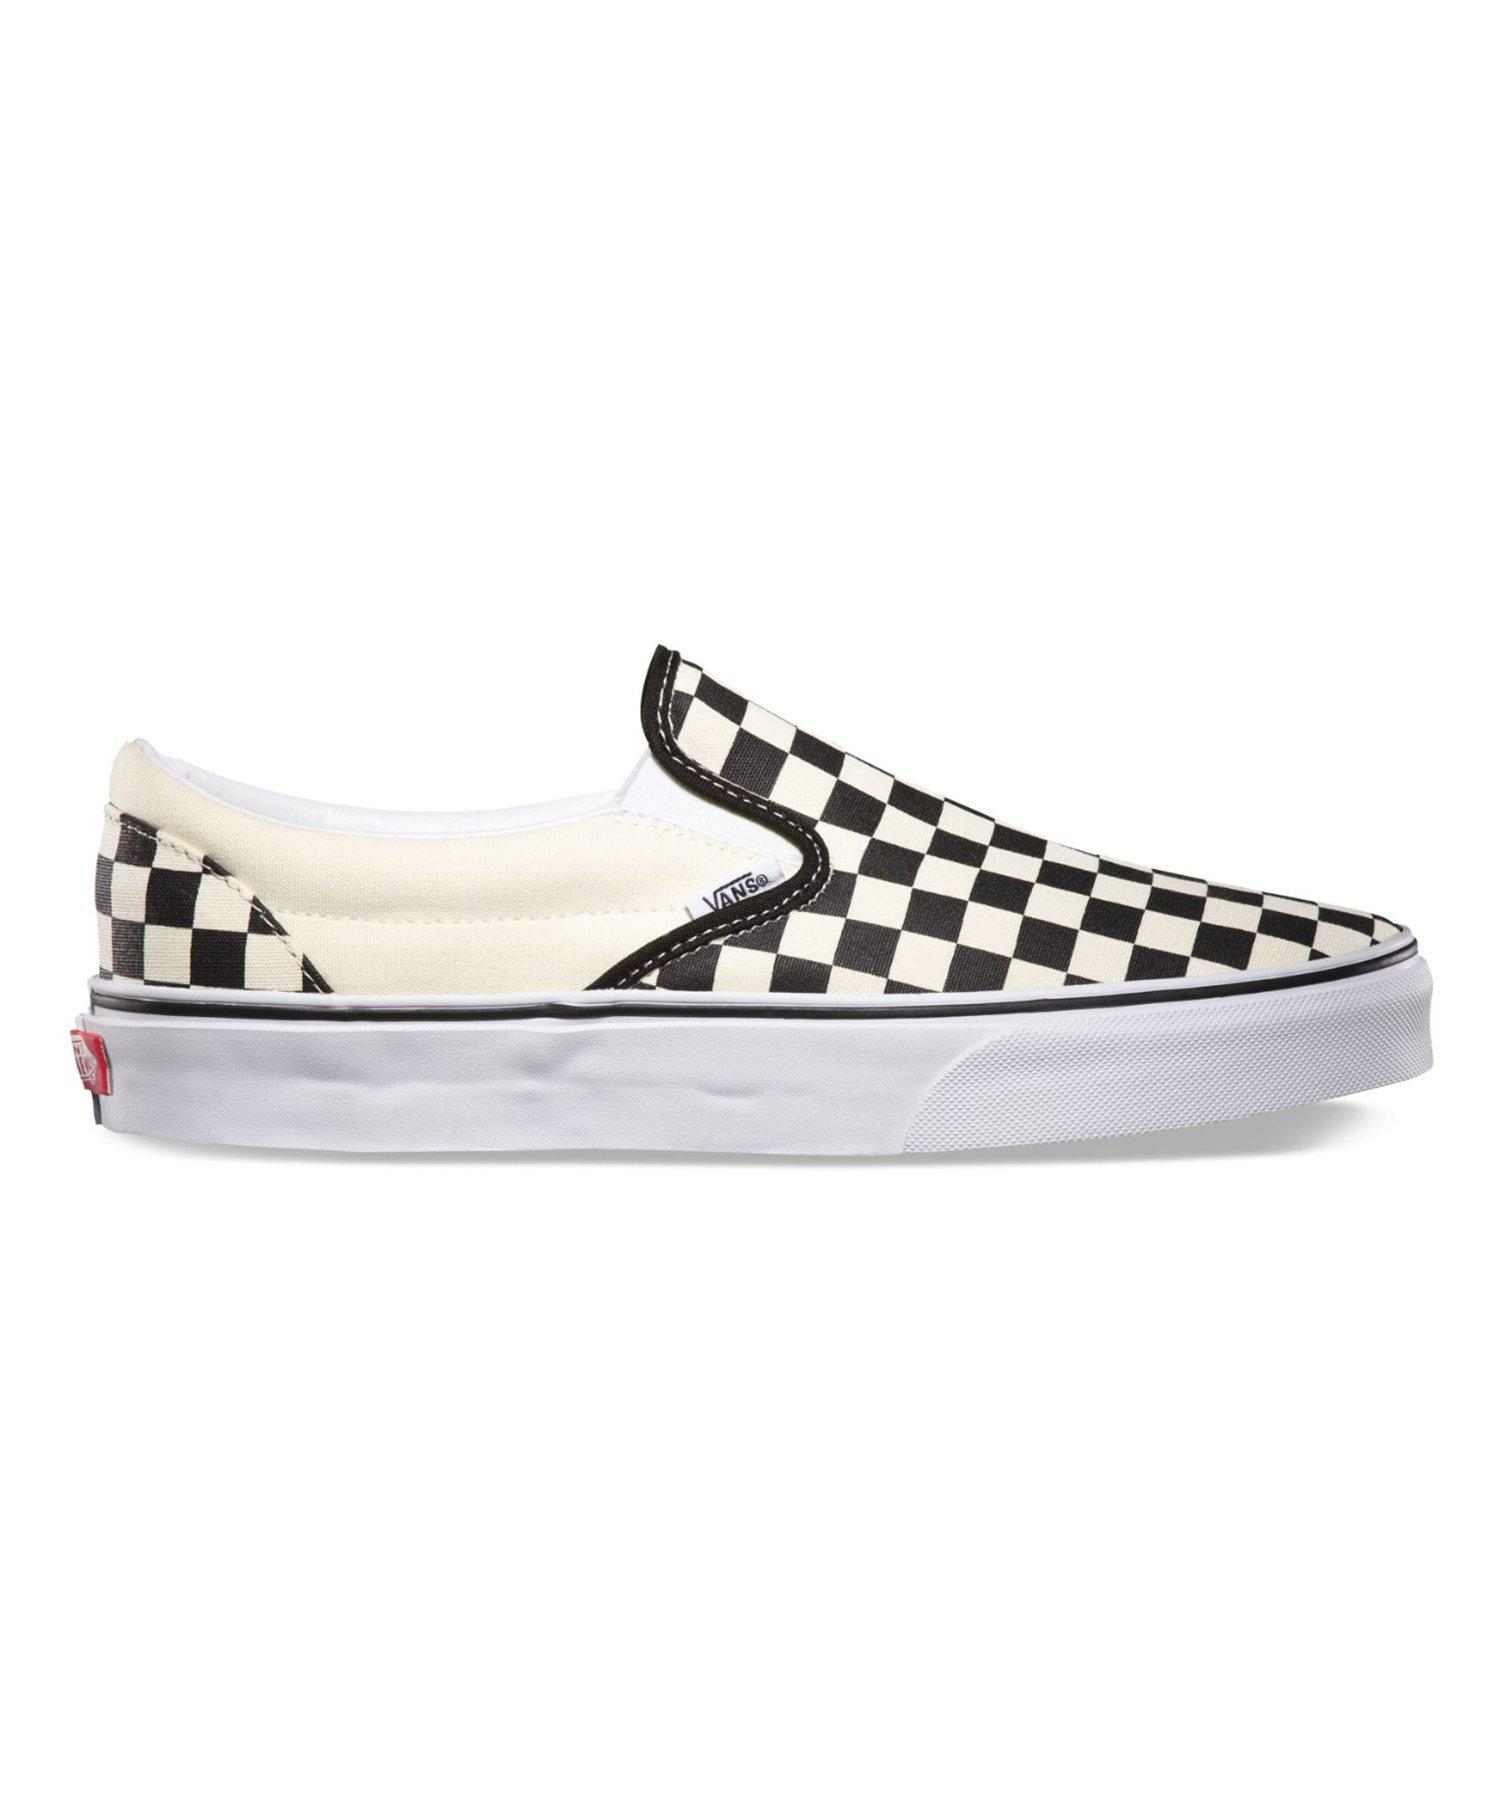 8c9e76cd3e49 Vans - Black Classic Checkered Slip On for Men - Lyst. View fullscreen